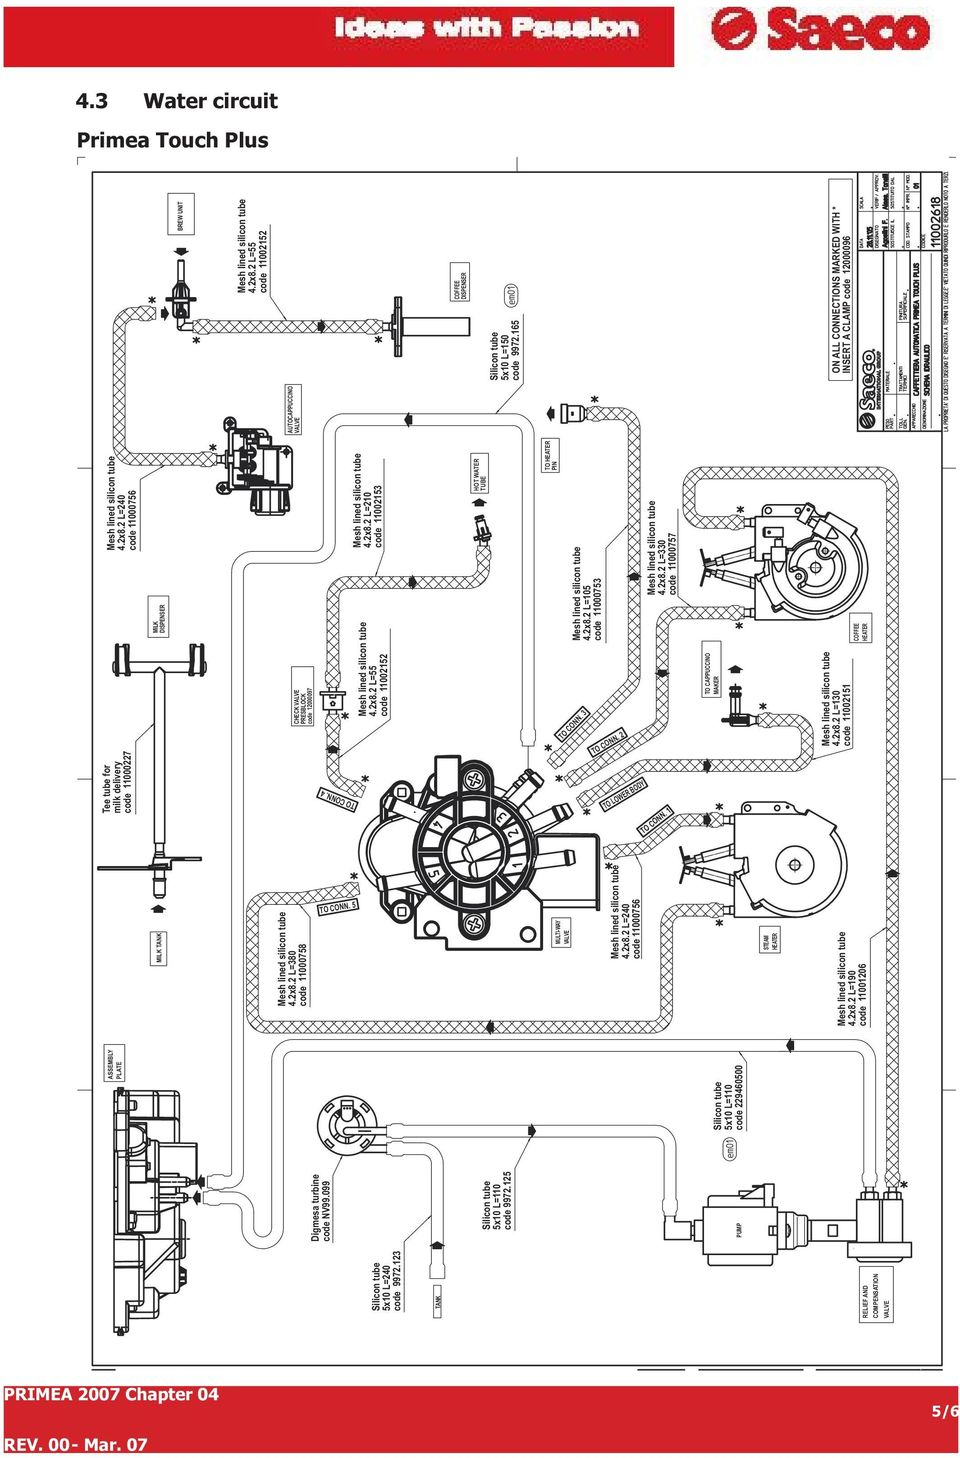 Wiring Diagram Saeco Coffee Maker Page 3 And Bunn Bxb Royal Office Schematics Bar